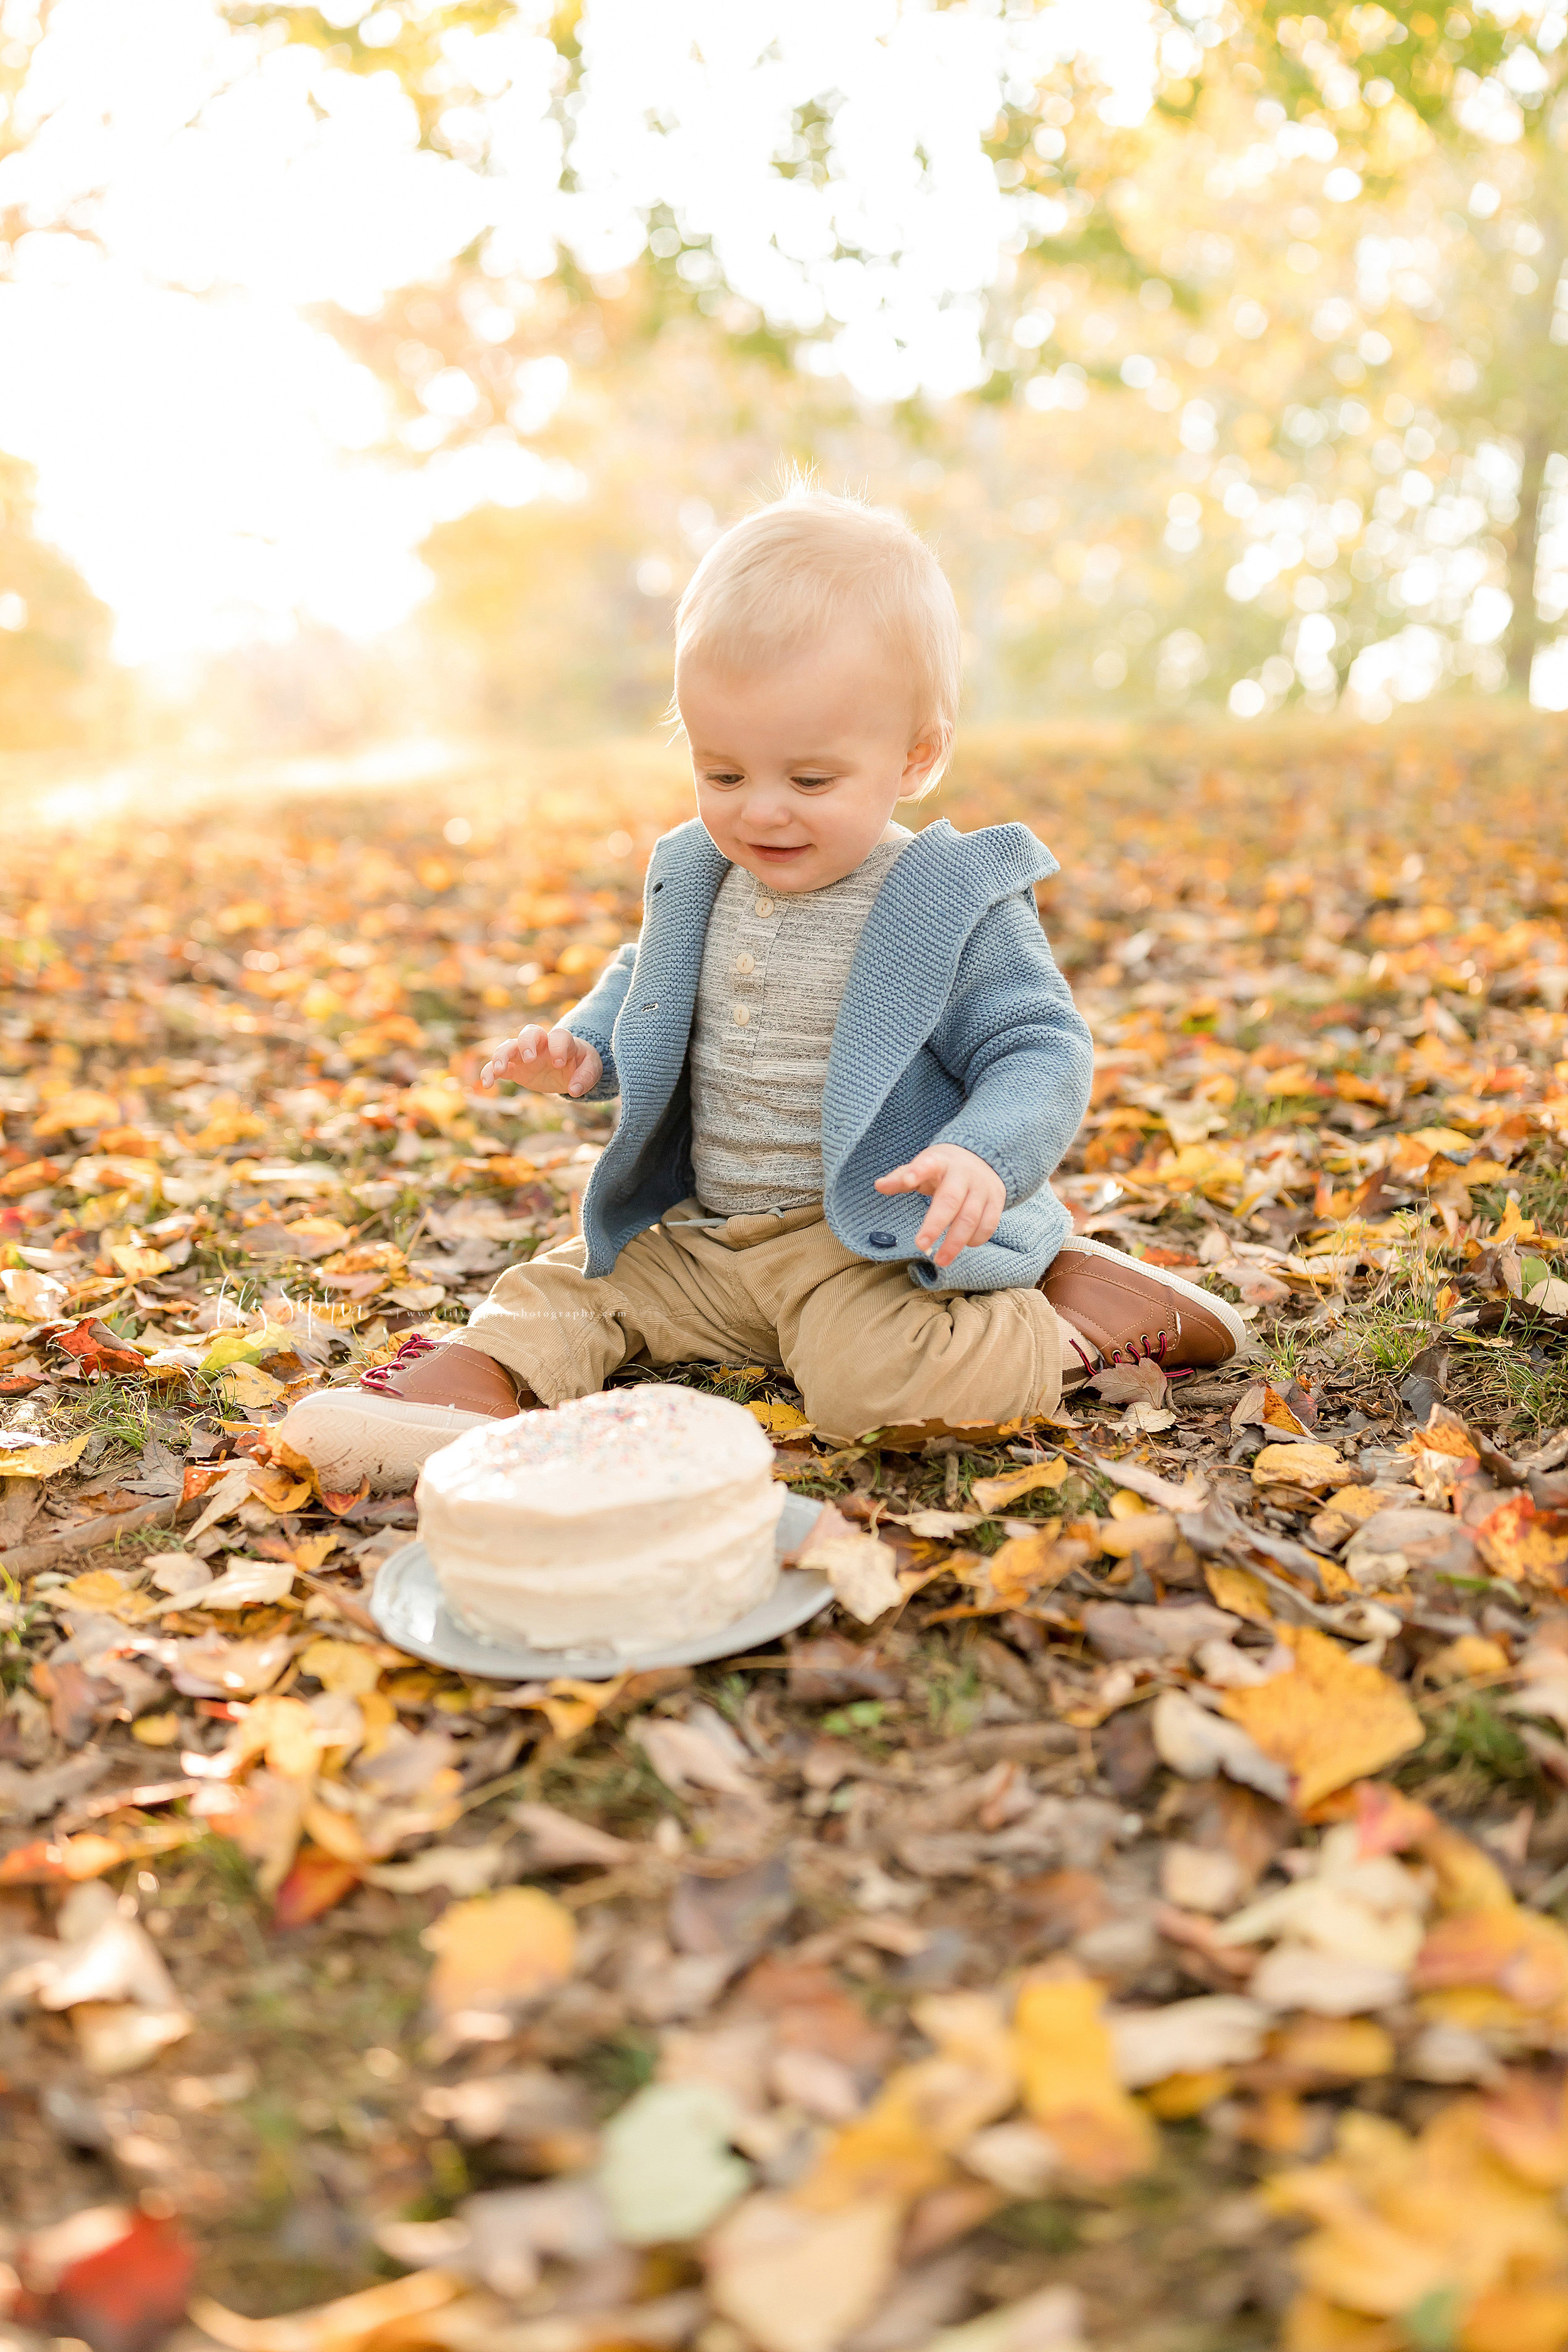 Milestone photo of a one year old eyeing his first birthday cake during autumn in an Atlanta park at sunset.